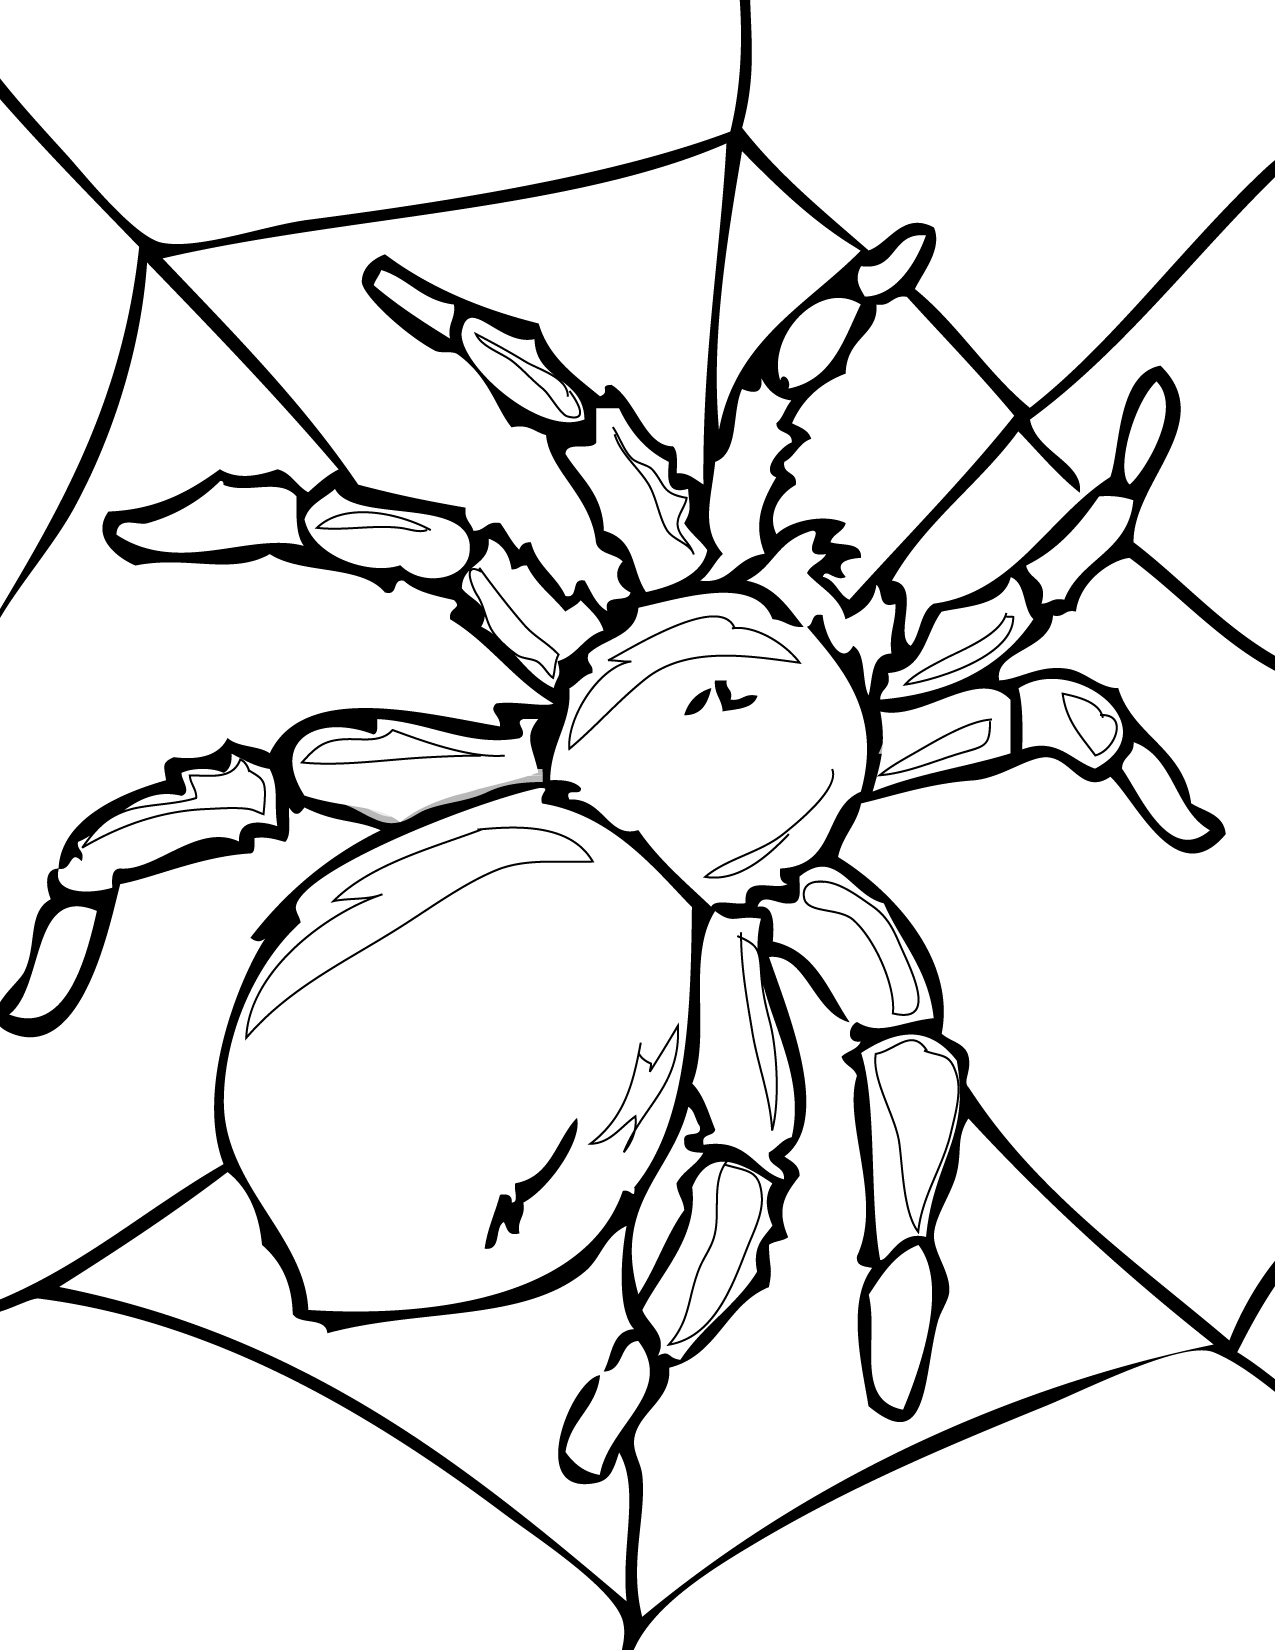 Free Printable Pictures Of Insects, Download Free Clip Art.